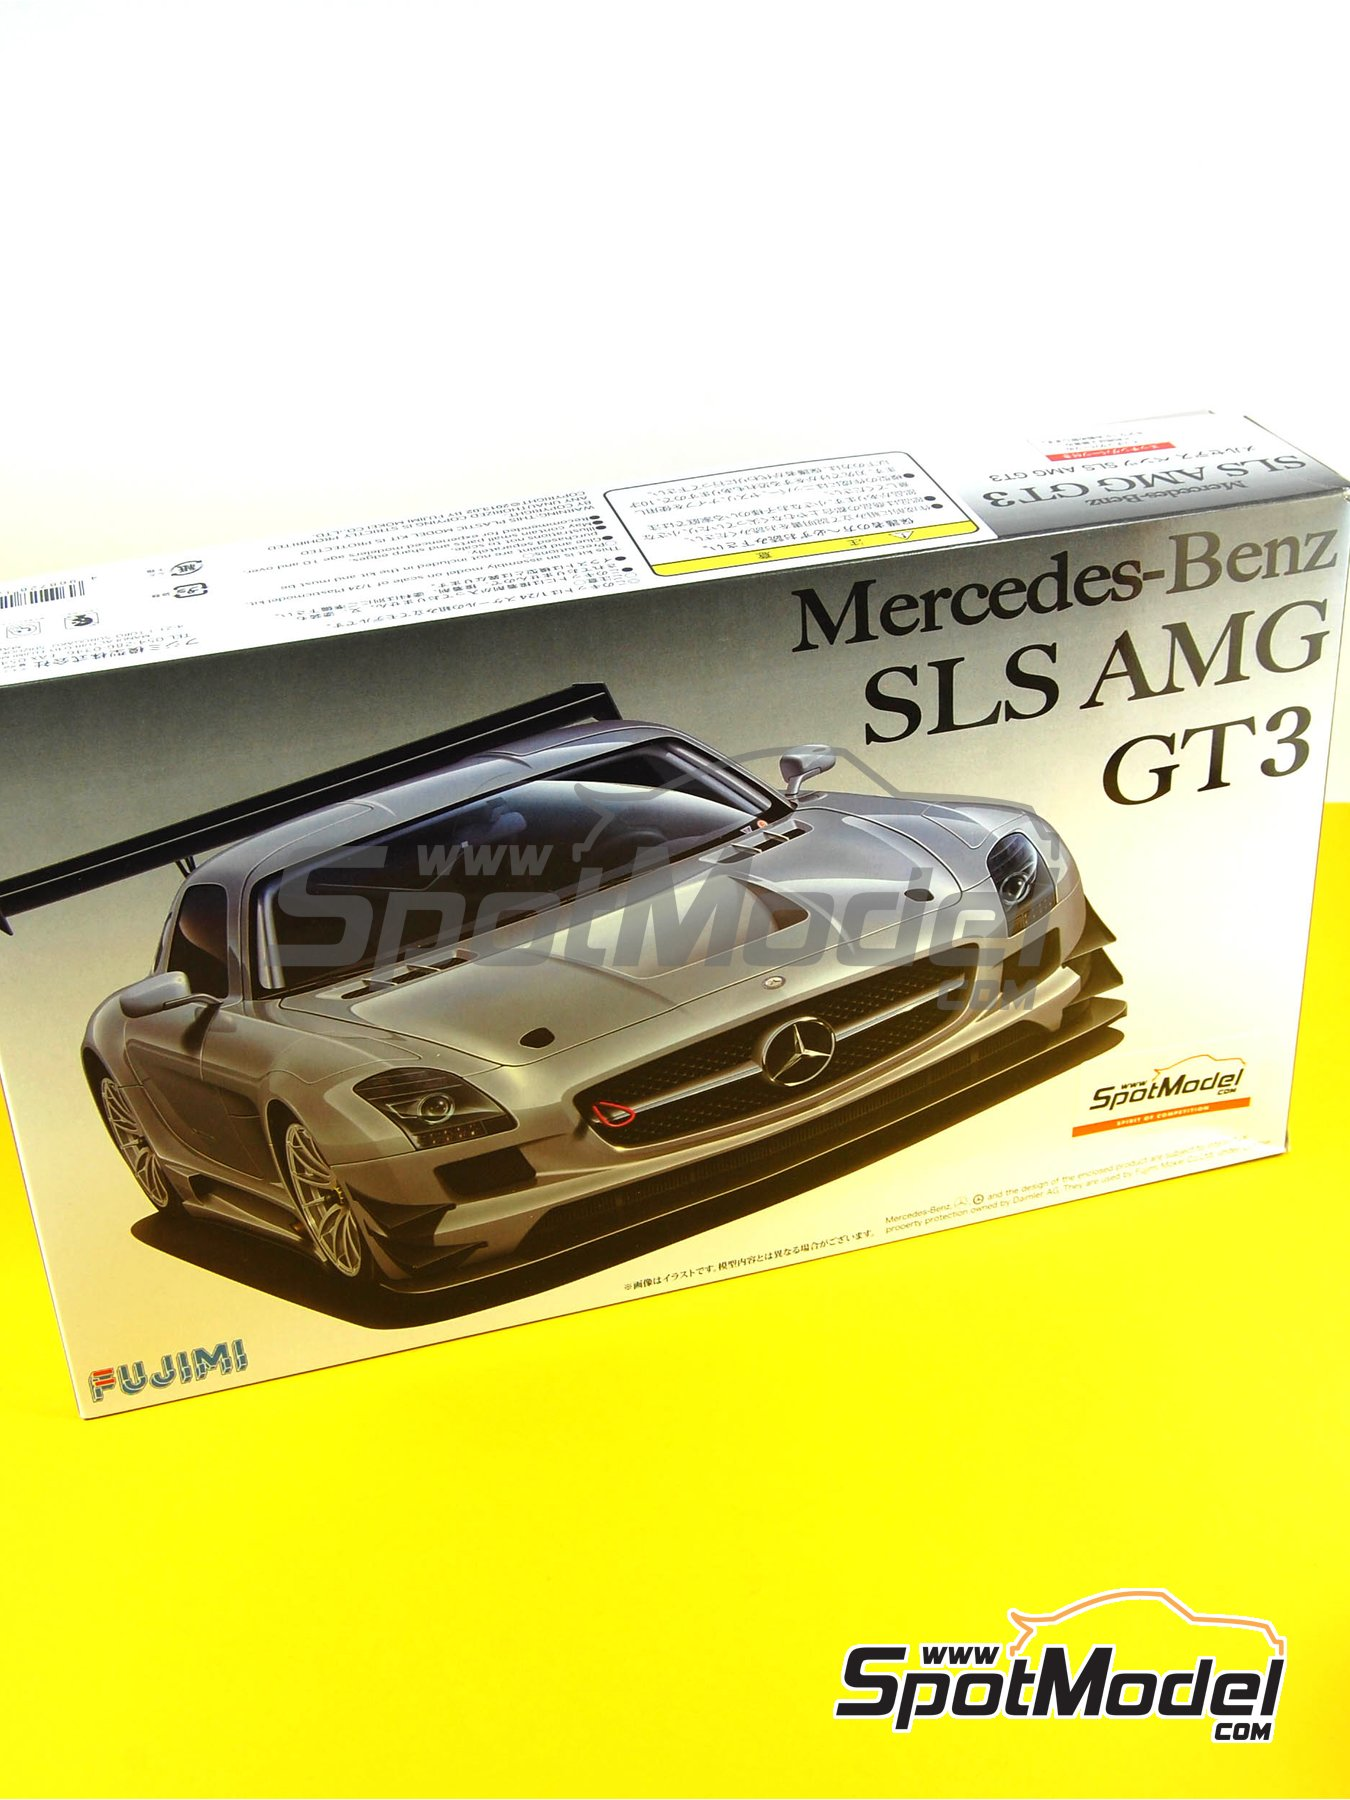 Mercedes Benz SLS AMG GT3 | Model Car Kit In 1/24 Scale Manufactured By